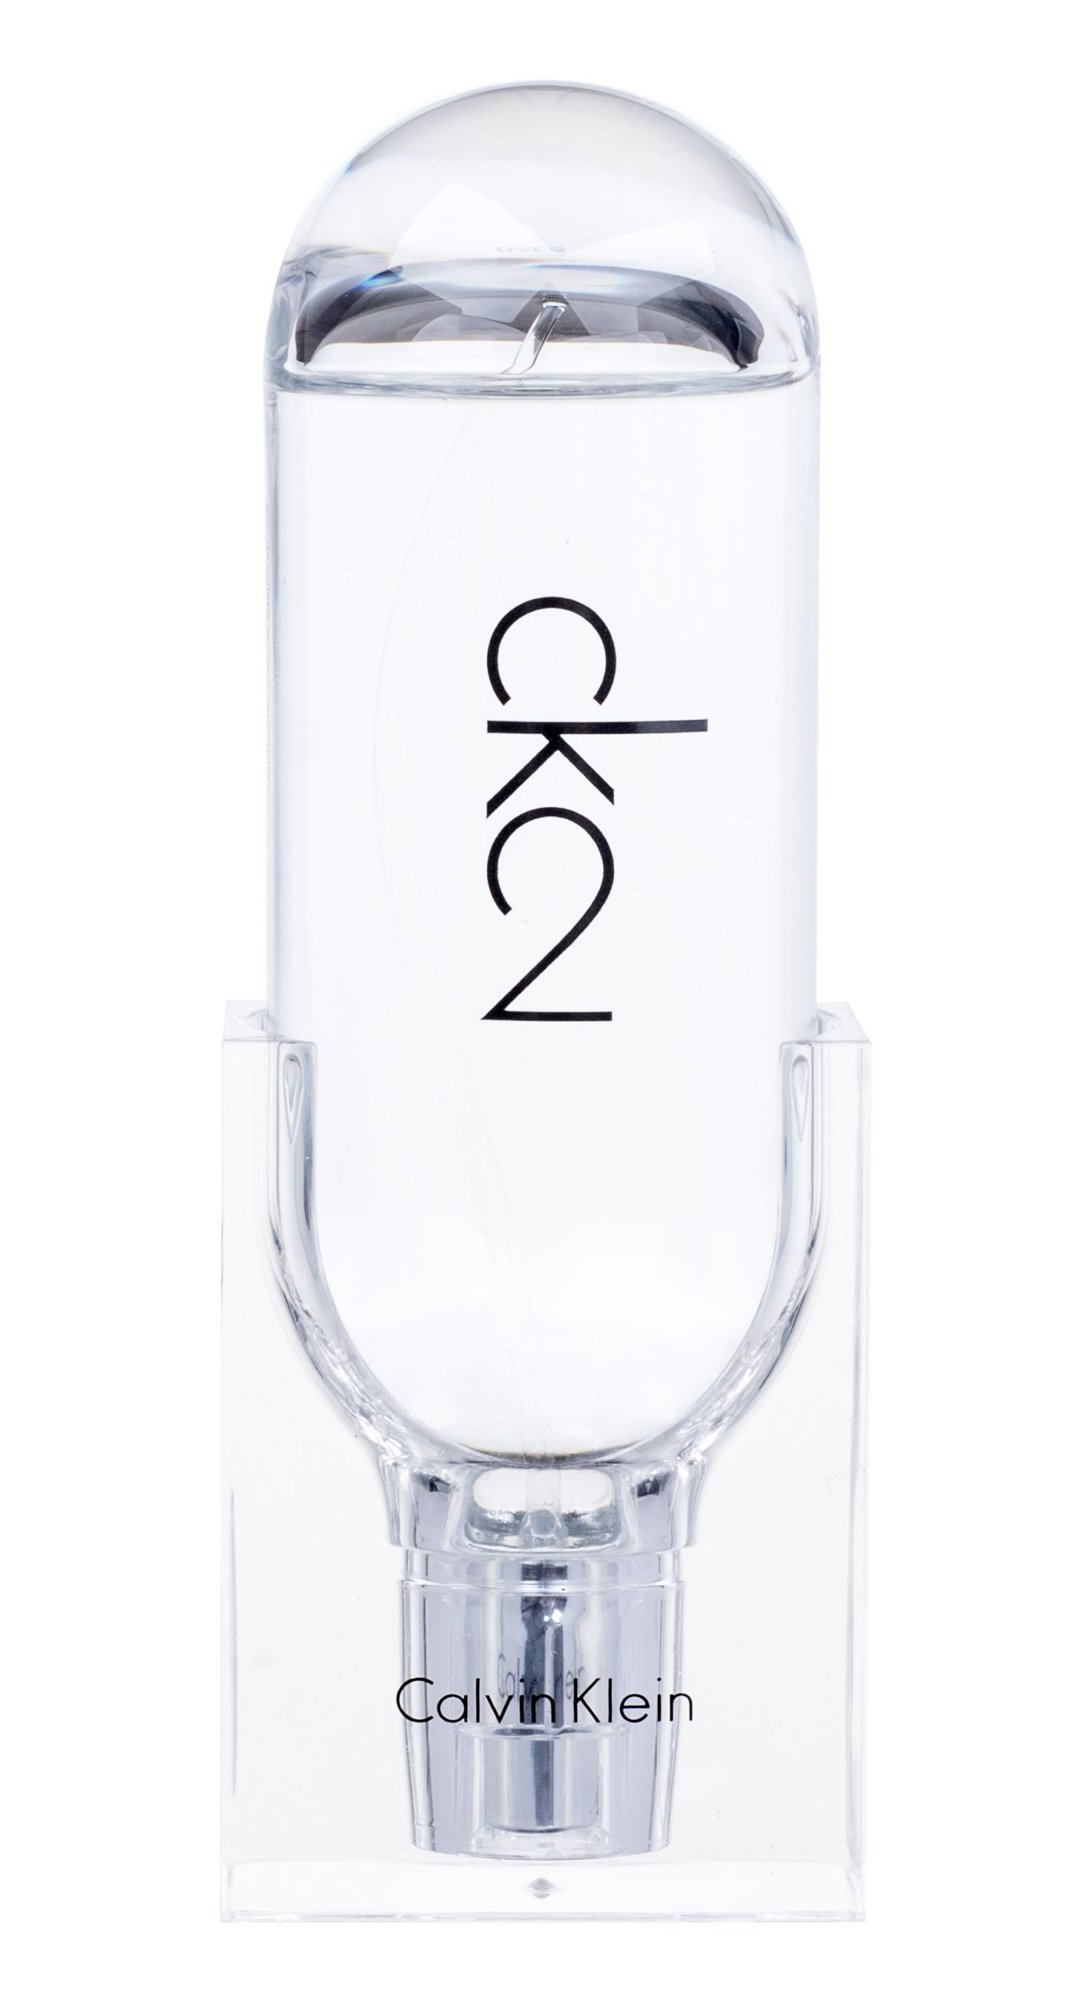 0c2713f800 Calvin Klein CK2 Body lotion 200ml - Kvepalupasaulis.lt